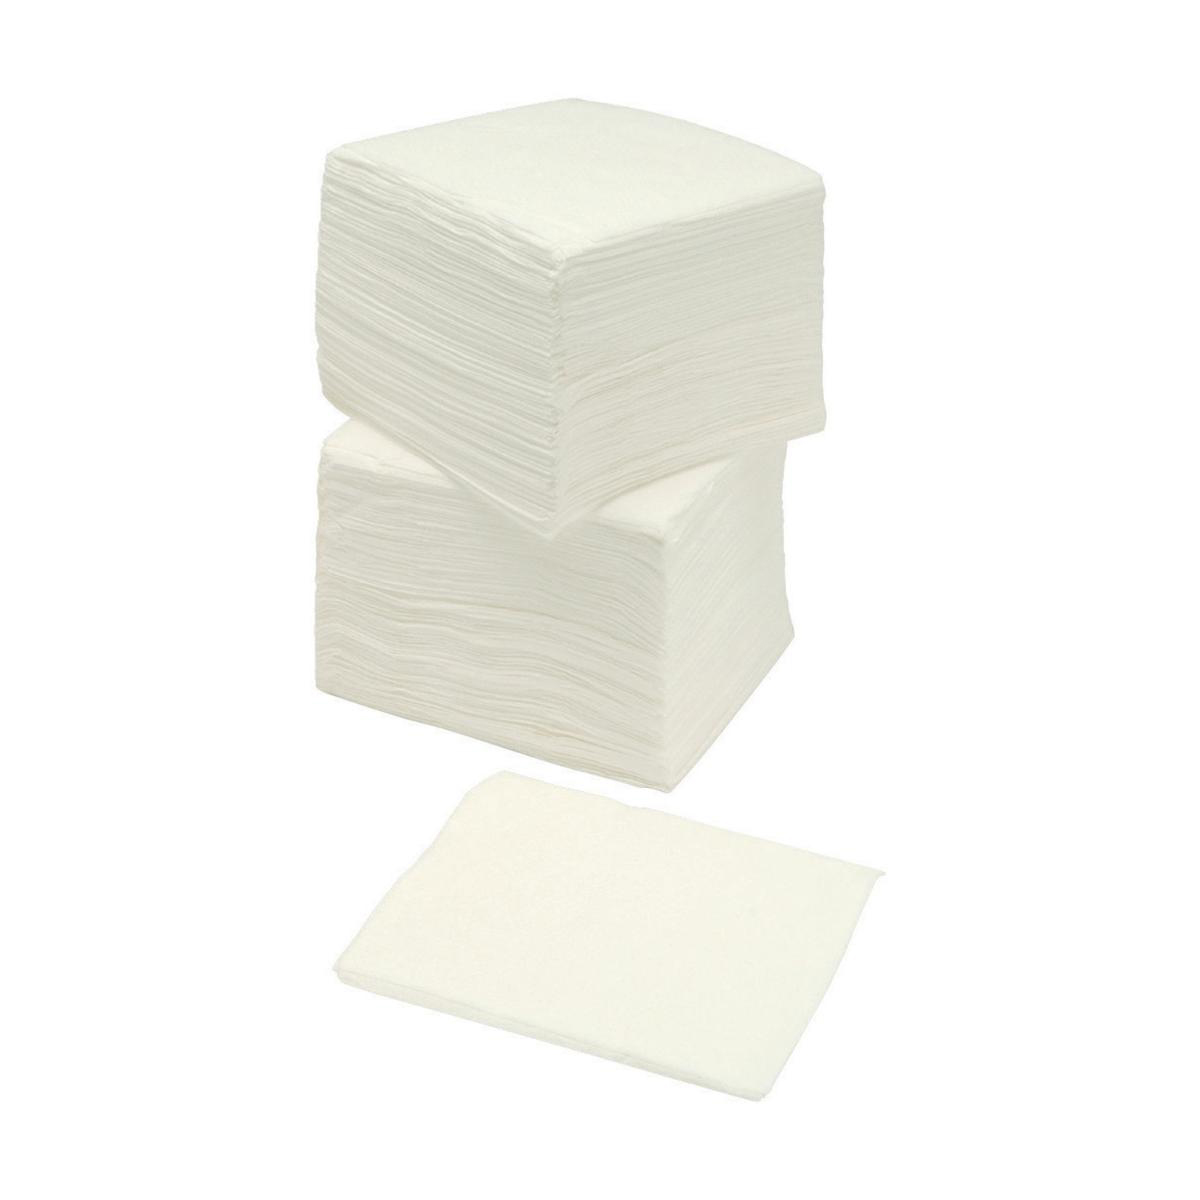 Business Napkins Economy Single Ply 300x300mm White [Pack 500]